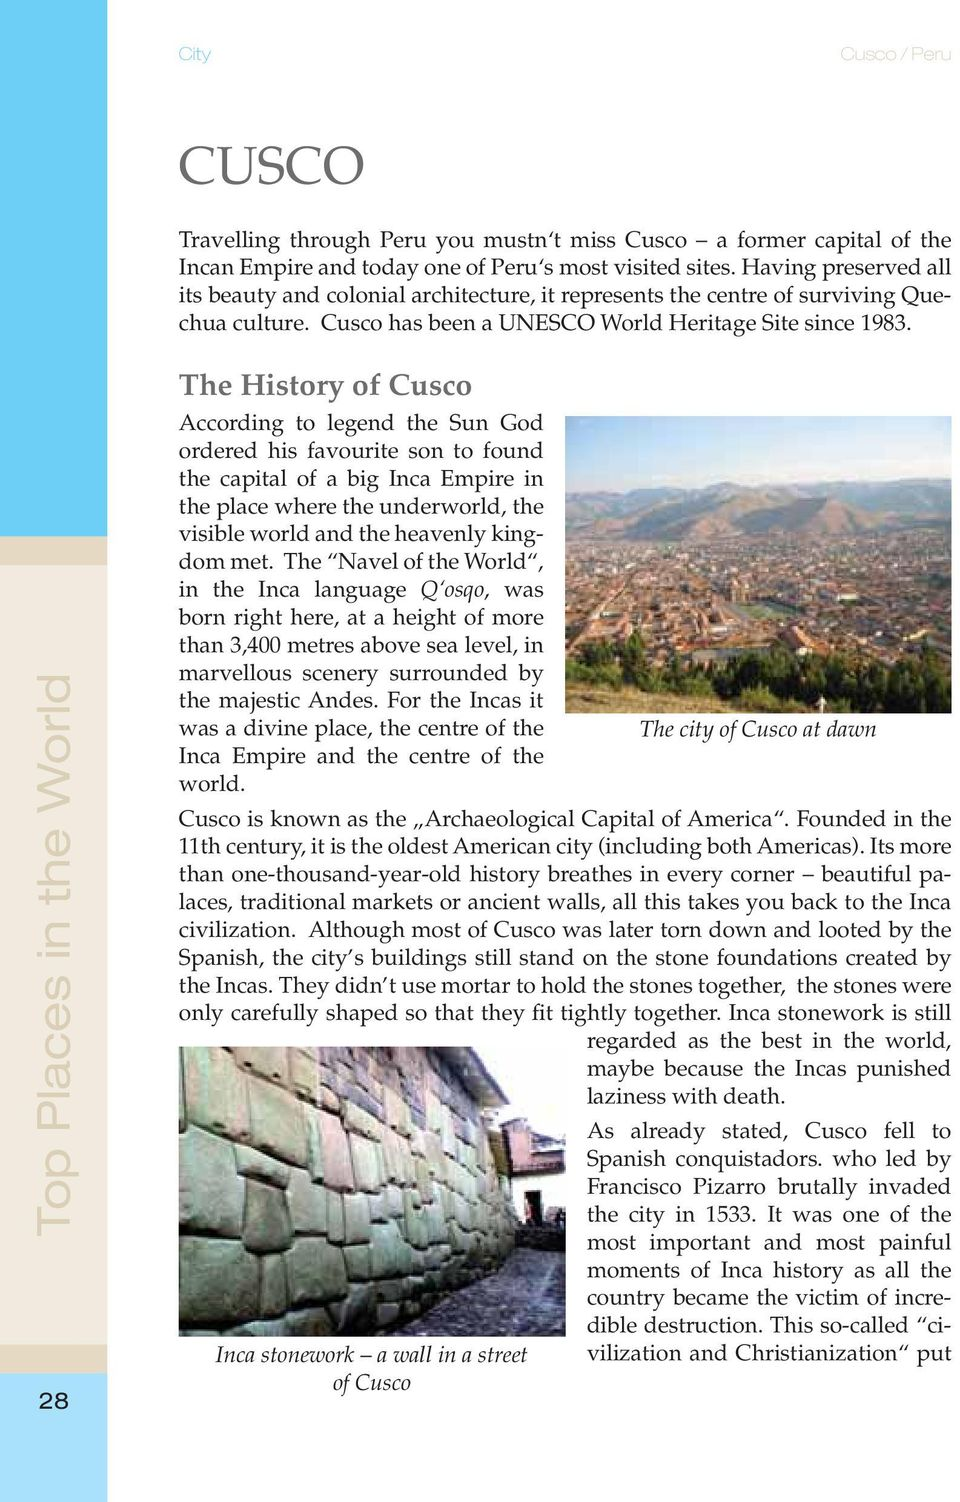 Top Places in the World 28 The History of Cusco According to legend the Sun God ordered his favourite son to found the capital of a big Inca Empire in the place where the underworld, the visible